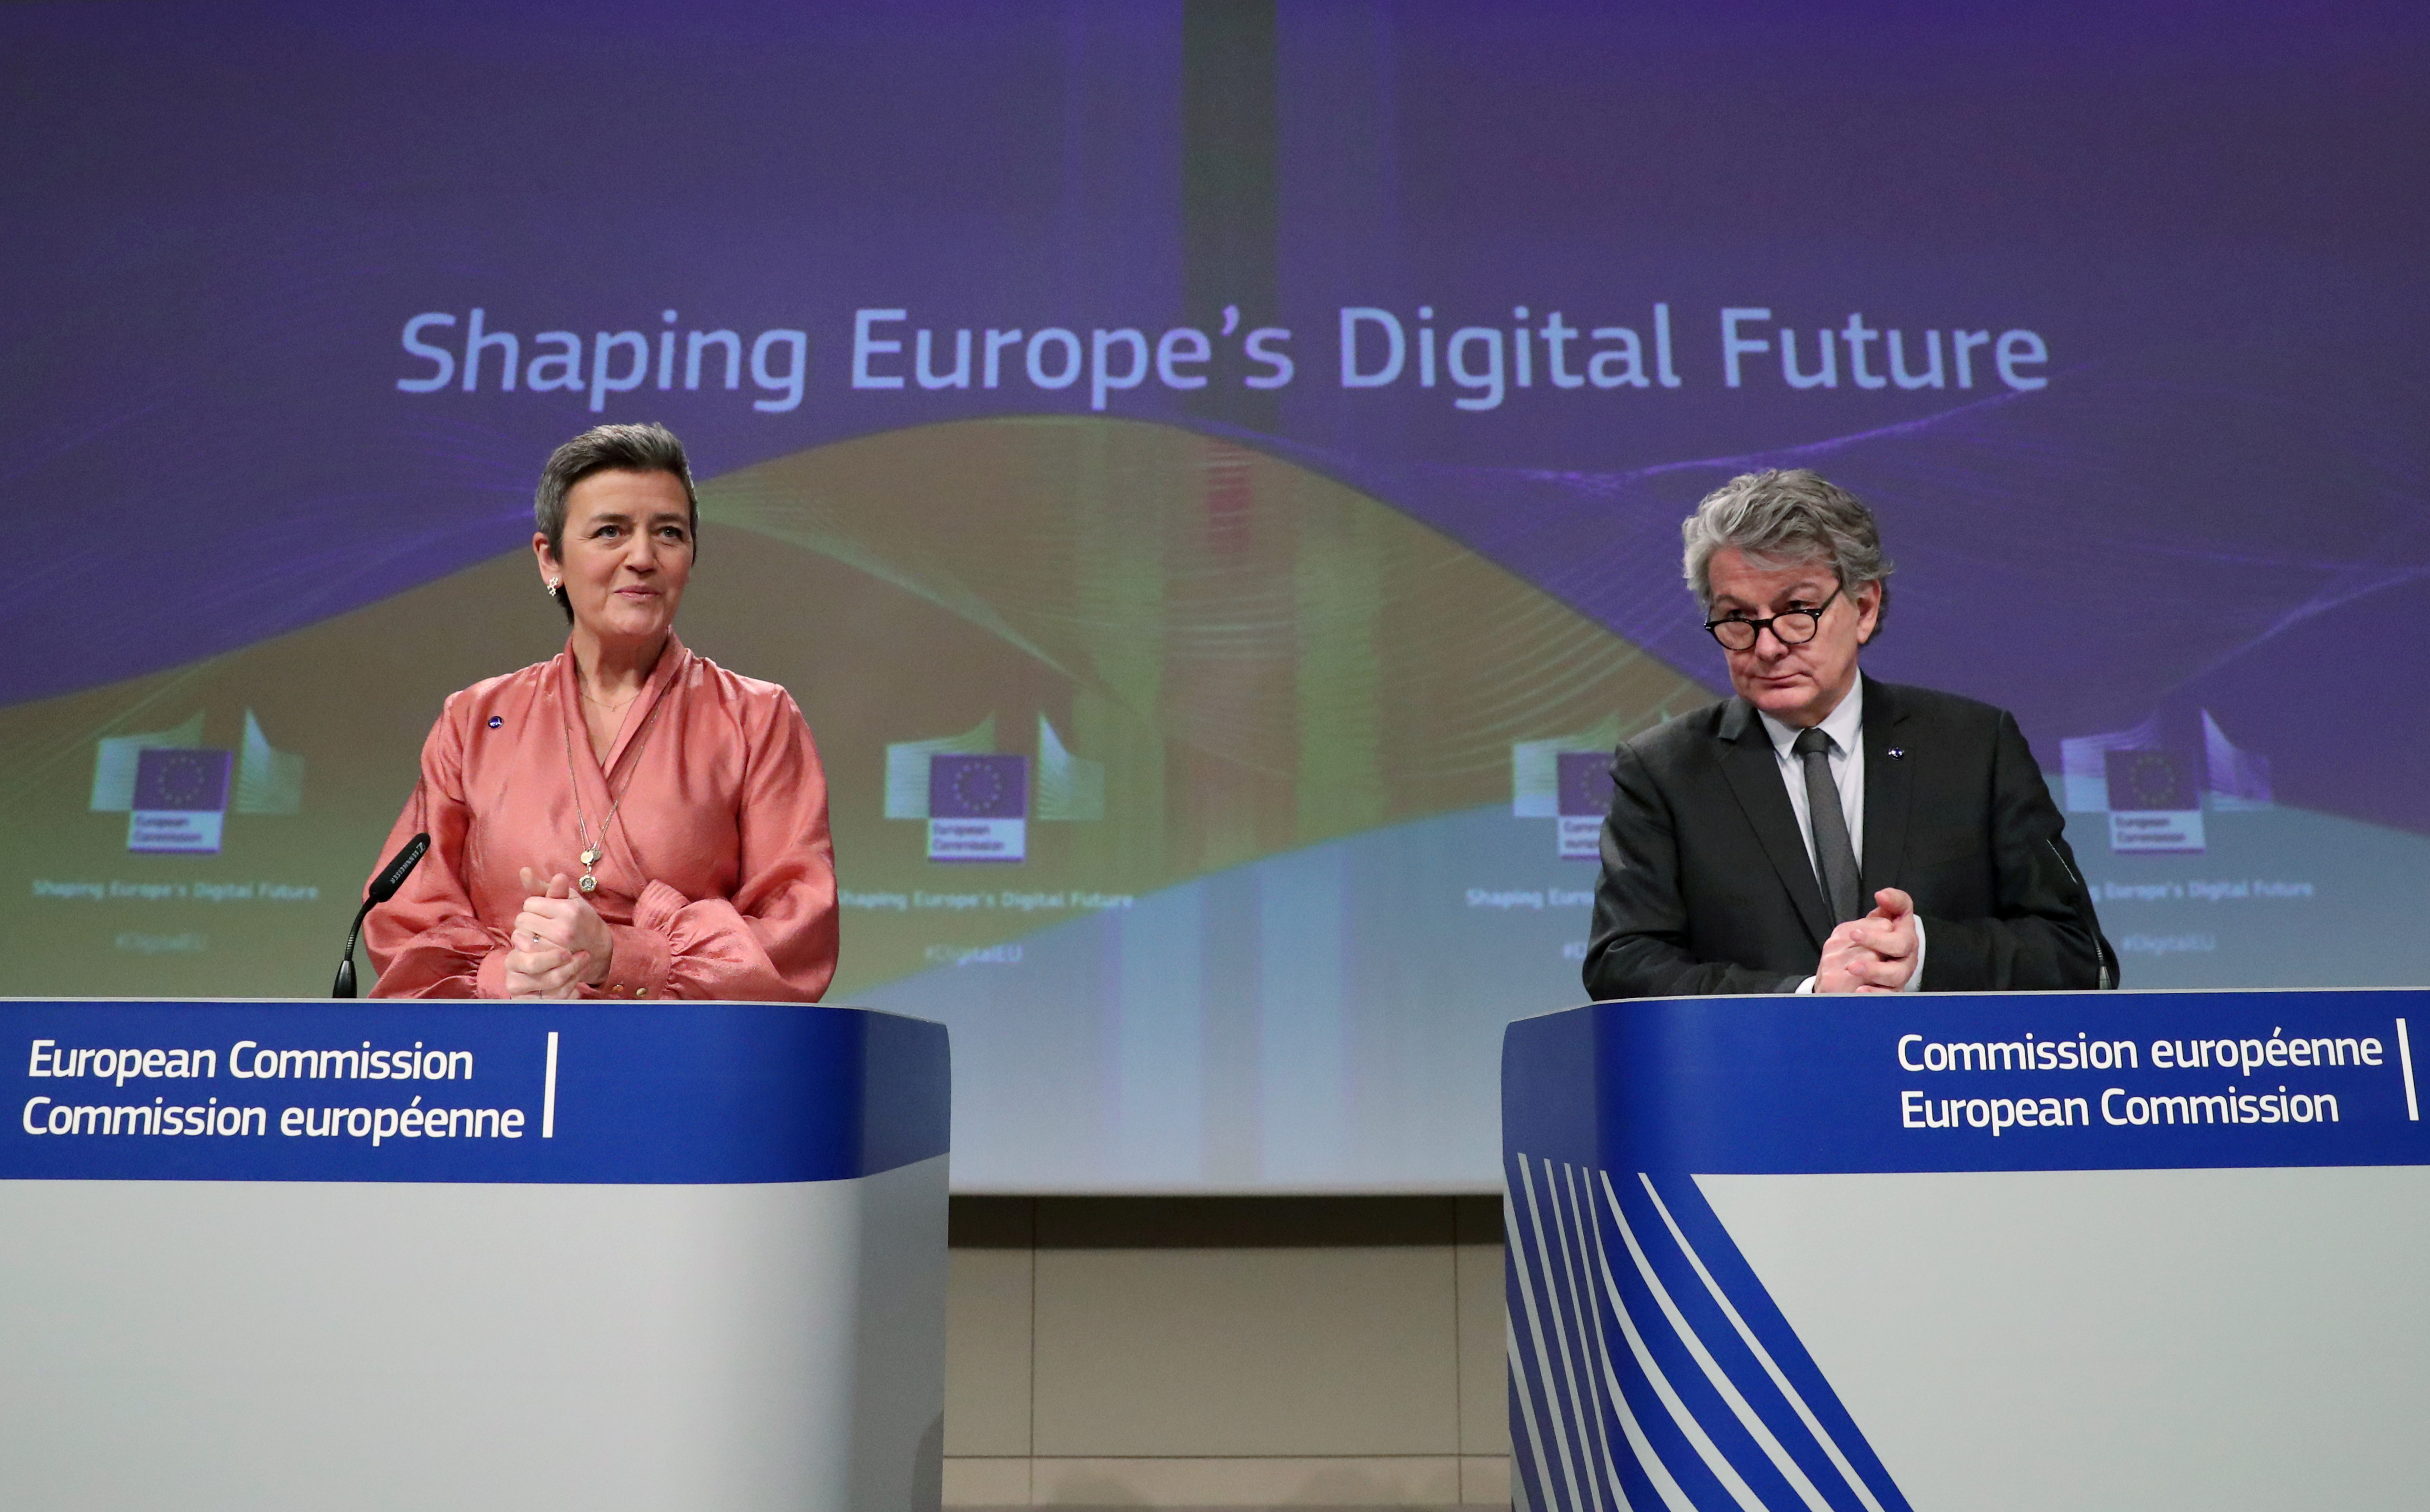 European Commissioner for a Europe Fit for the Digital Age Margrethe Vestager and European Internal Market Commissioner Thierry Breton attend the presentation of the European Commission's data/digital strategy in Brussels, Belgium February 19, 2020.  REUTERS/Yves Herman